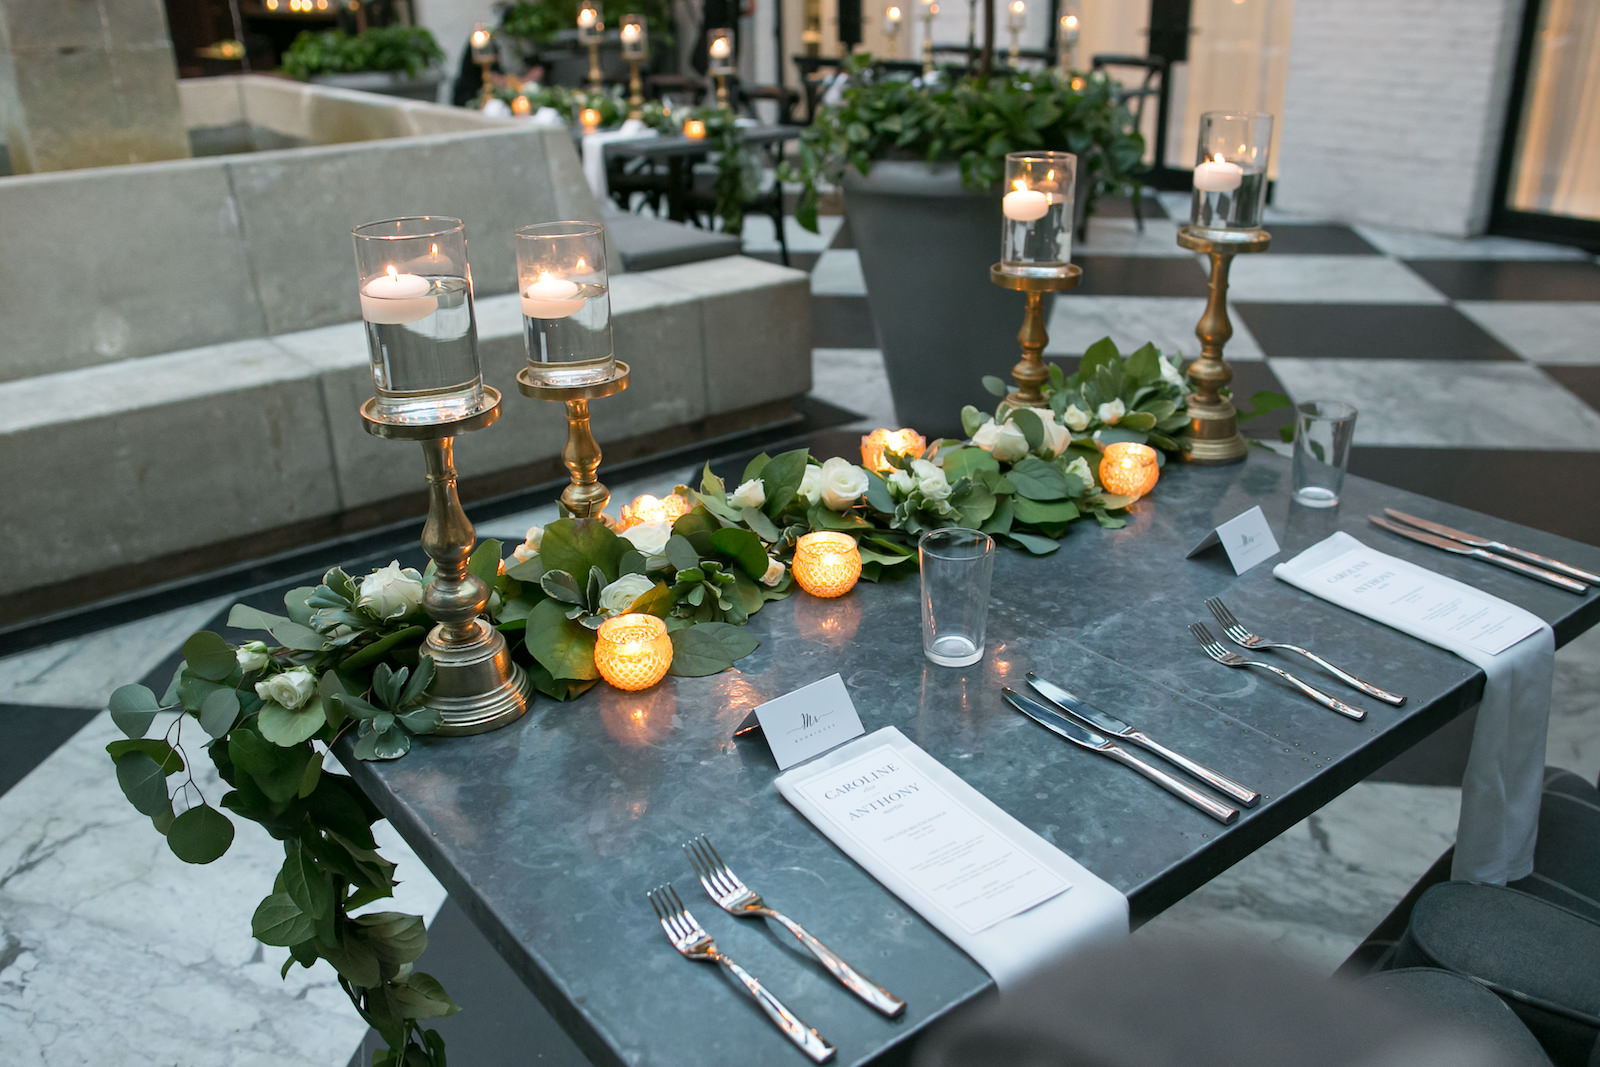 Tampa Wedding Reception at Oxford Exchange Downtown Tampa | Sweetheart Table with Upholstered Wingback Chairs and White Napkins with Menu Cards | Wedding Centerpieces of Floating Pedestal Candles and Greenery Garland